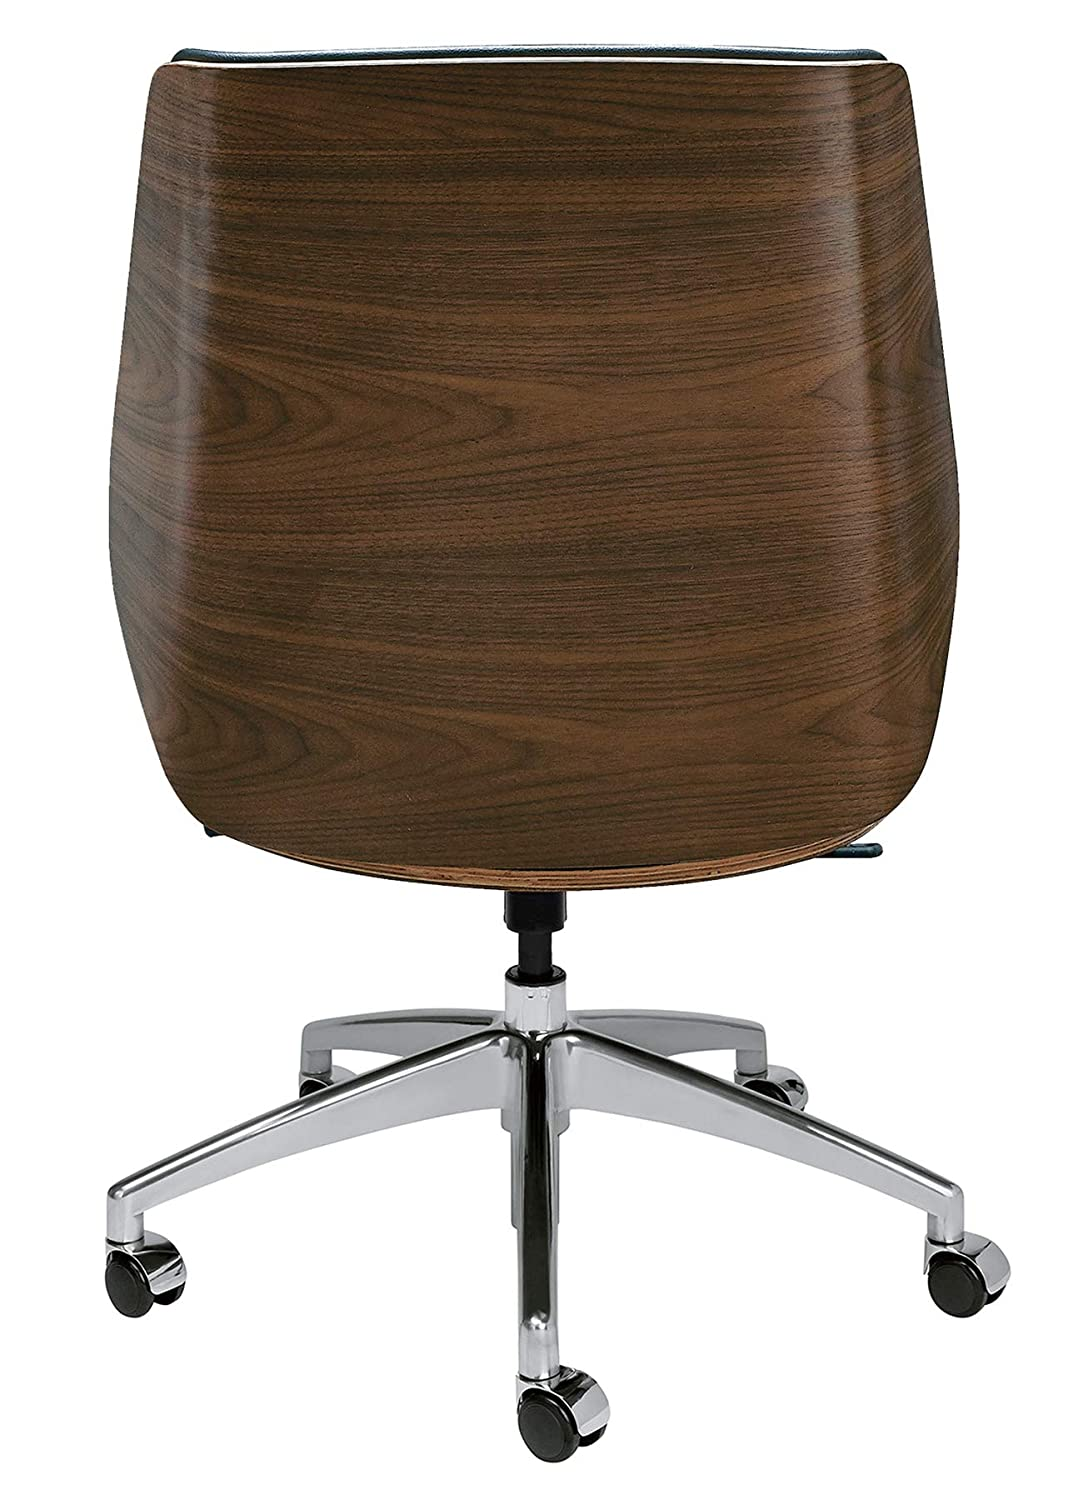 Wondrous Manhattan Mid Century Eames Style Office Chair With Vegan Leather And Wood Mid Back Black Short Links Chair Design For Home Short Linksinfo